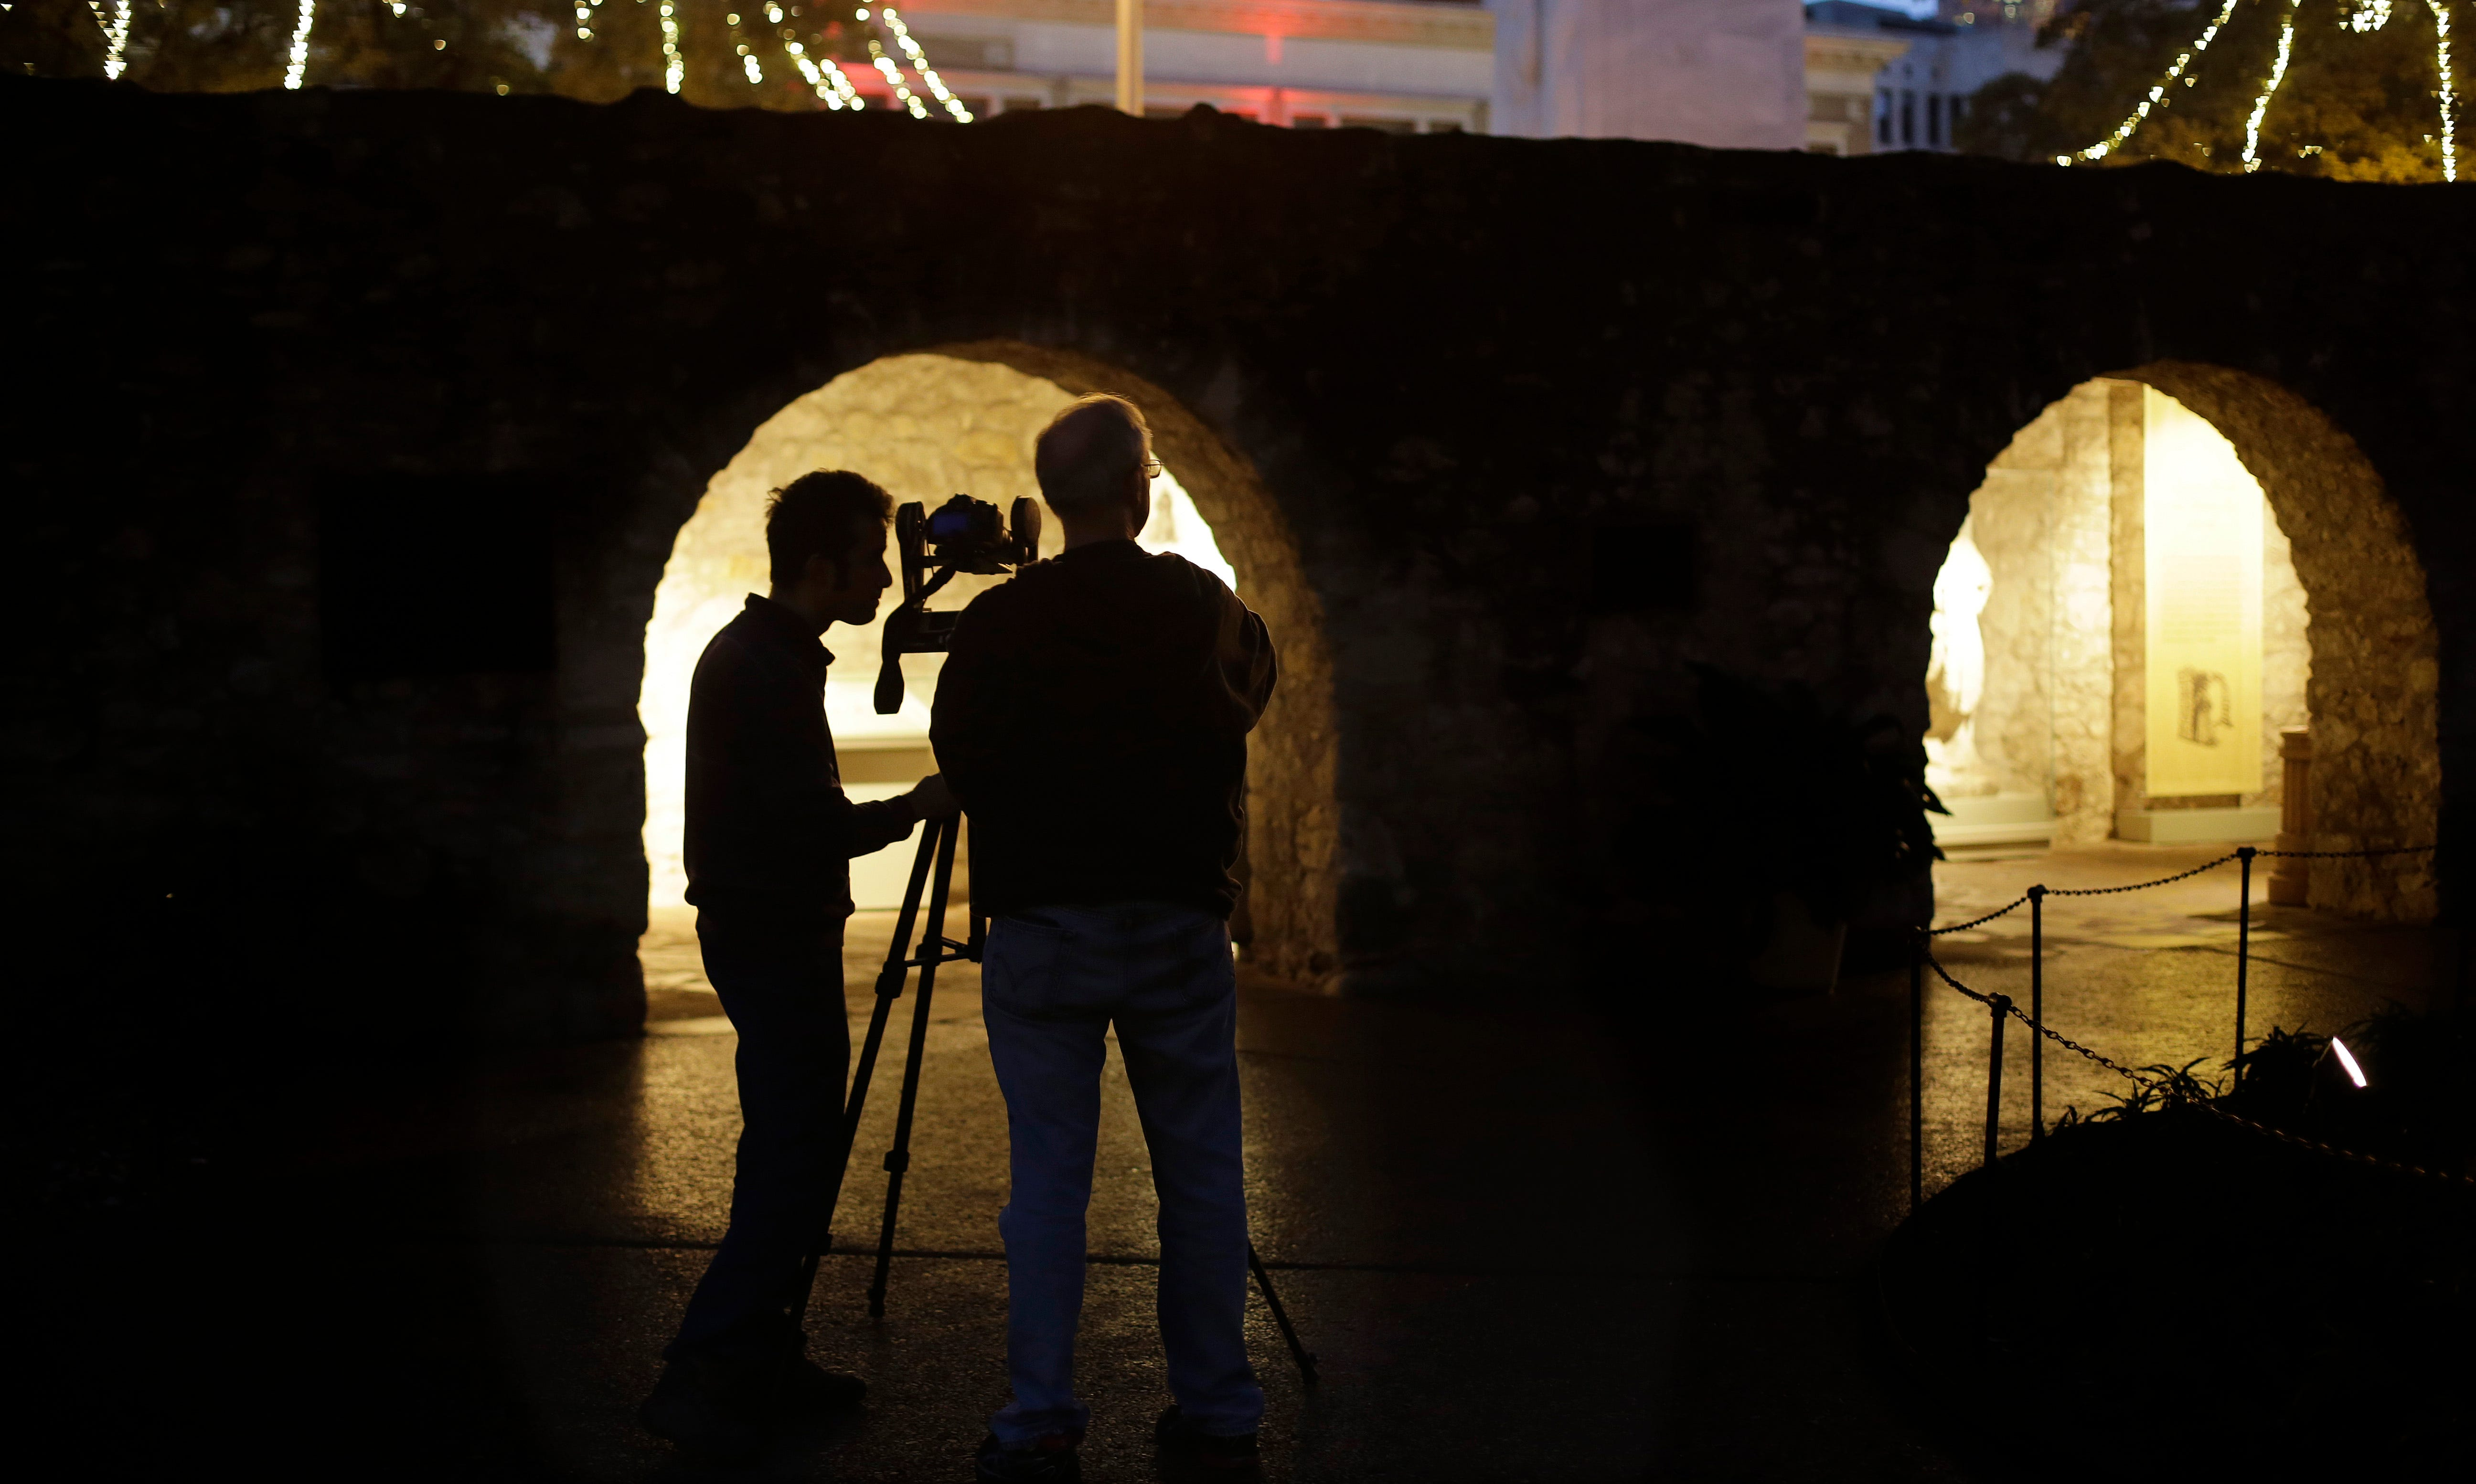 In this Jan. 9, 2014 photo, Soheil Hamideh, left, and Bob Warden, right, professor of architecture and director of the Center for Heritage Conservation at Texas A&M, use a camera to record images of the Alamo's long barrack, which was originally constructed in 1724.